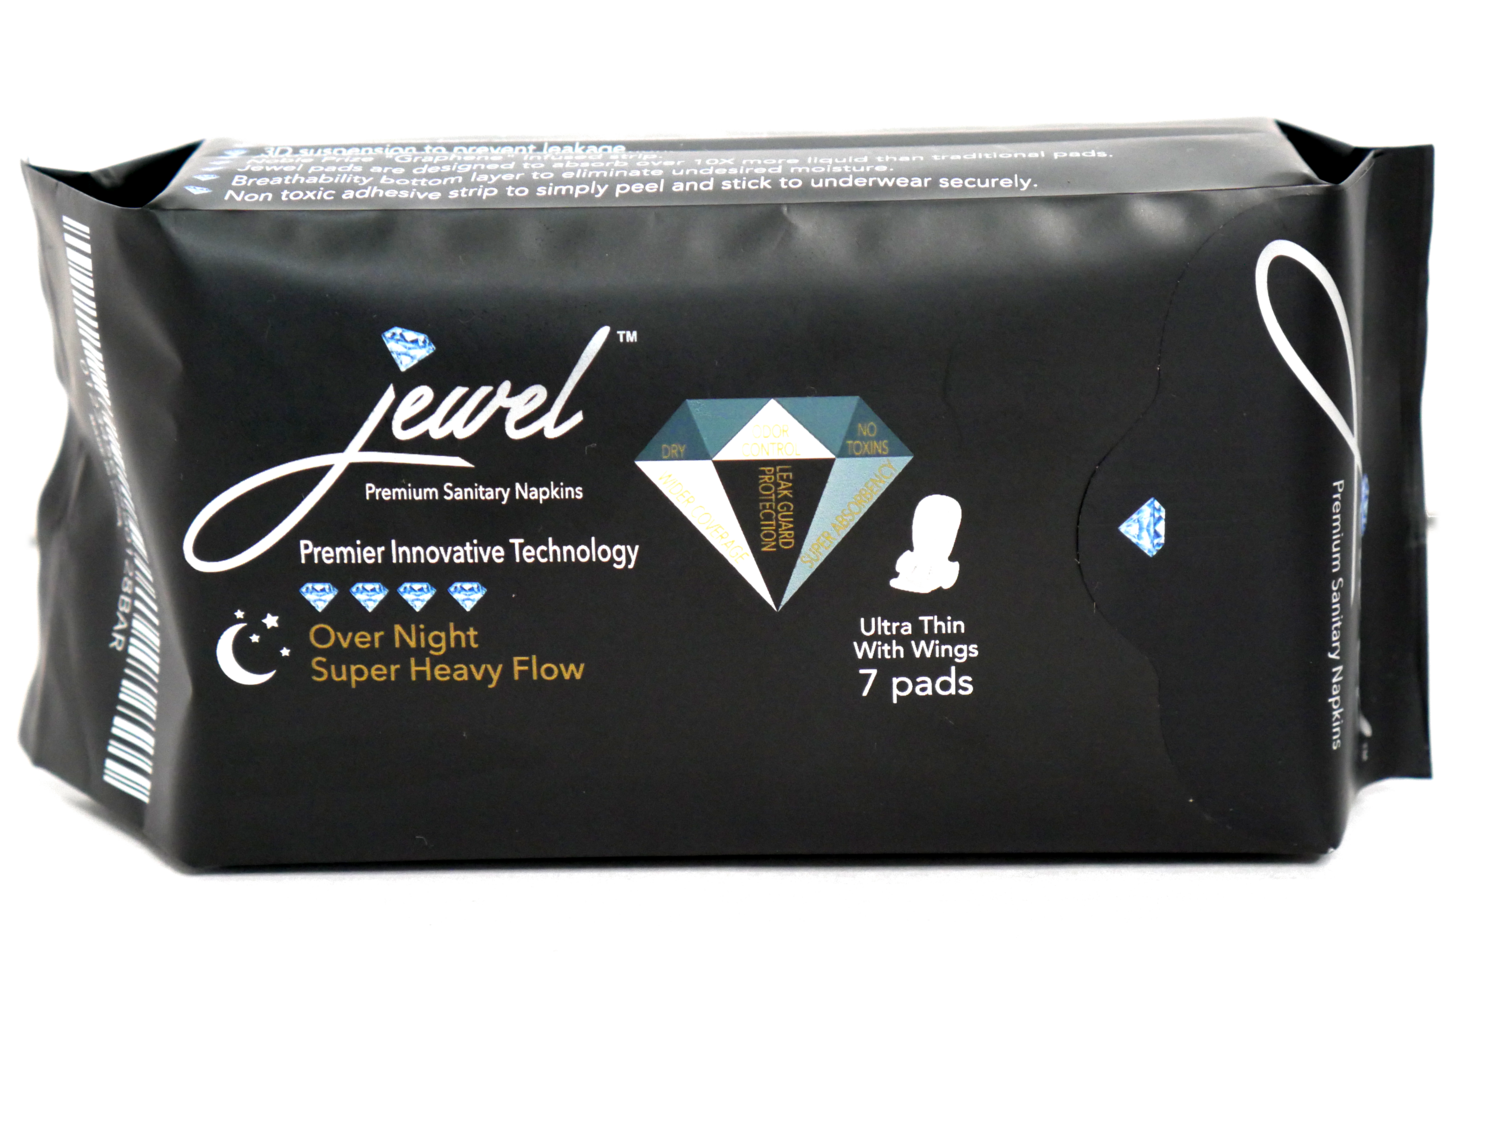 ​JEWEL PADS: OVERNIGHT USE FOR SUPER HEAVY FLOW